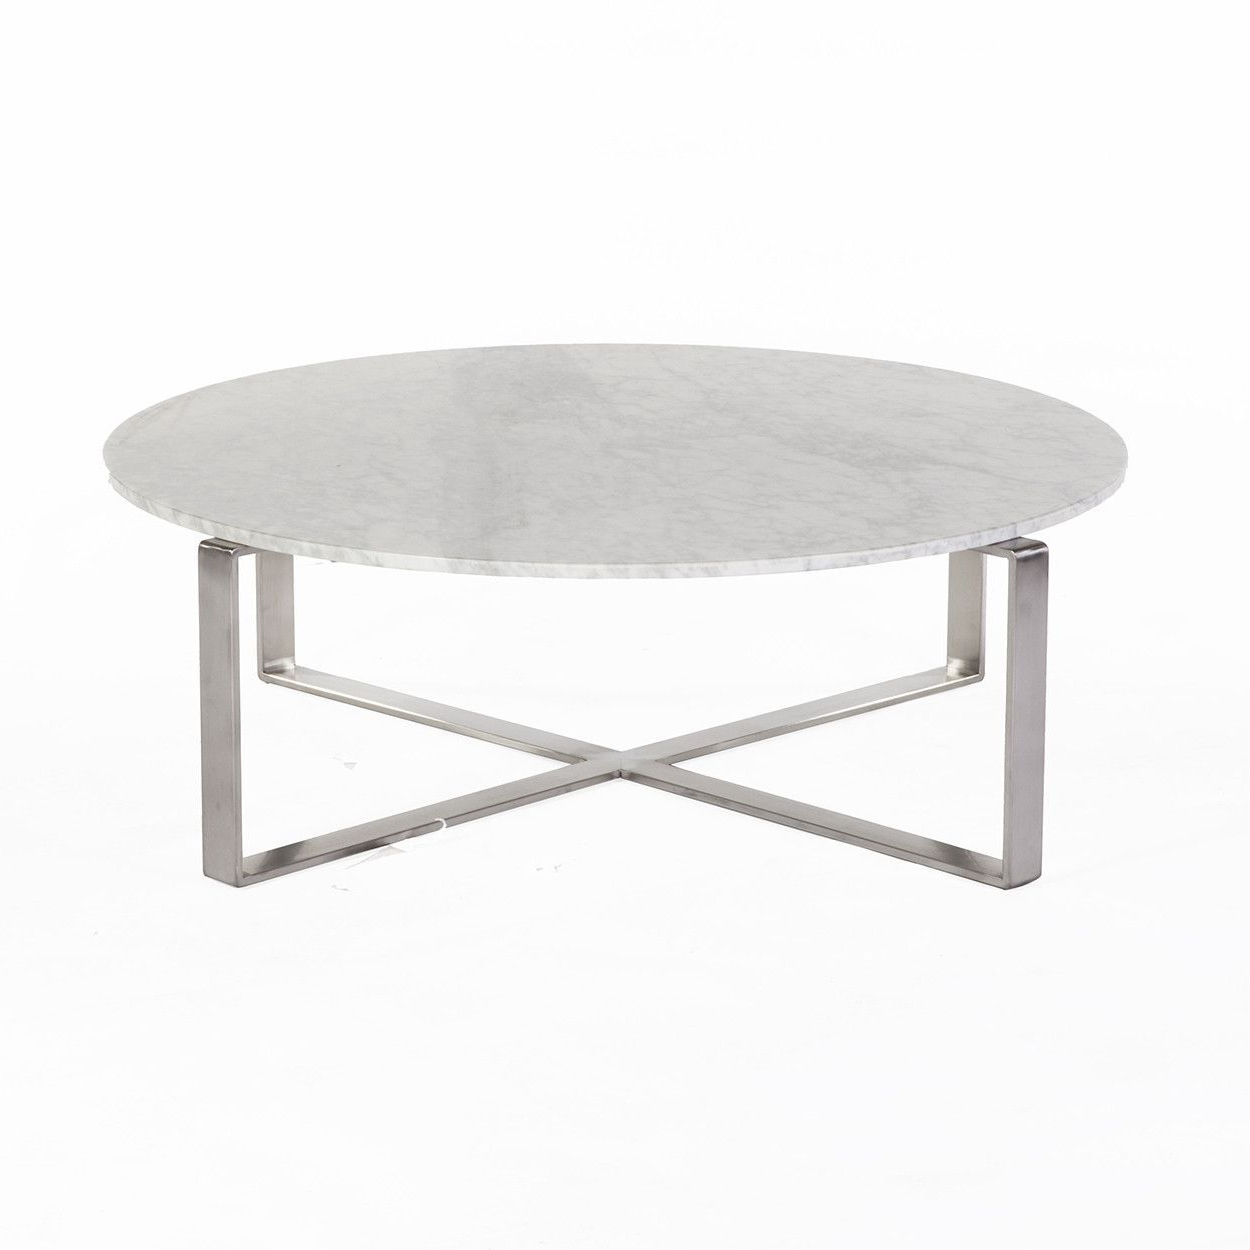 Tables Ideas And Designs (View 5 of 20)